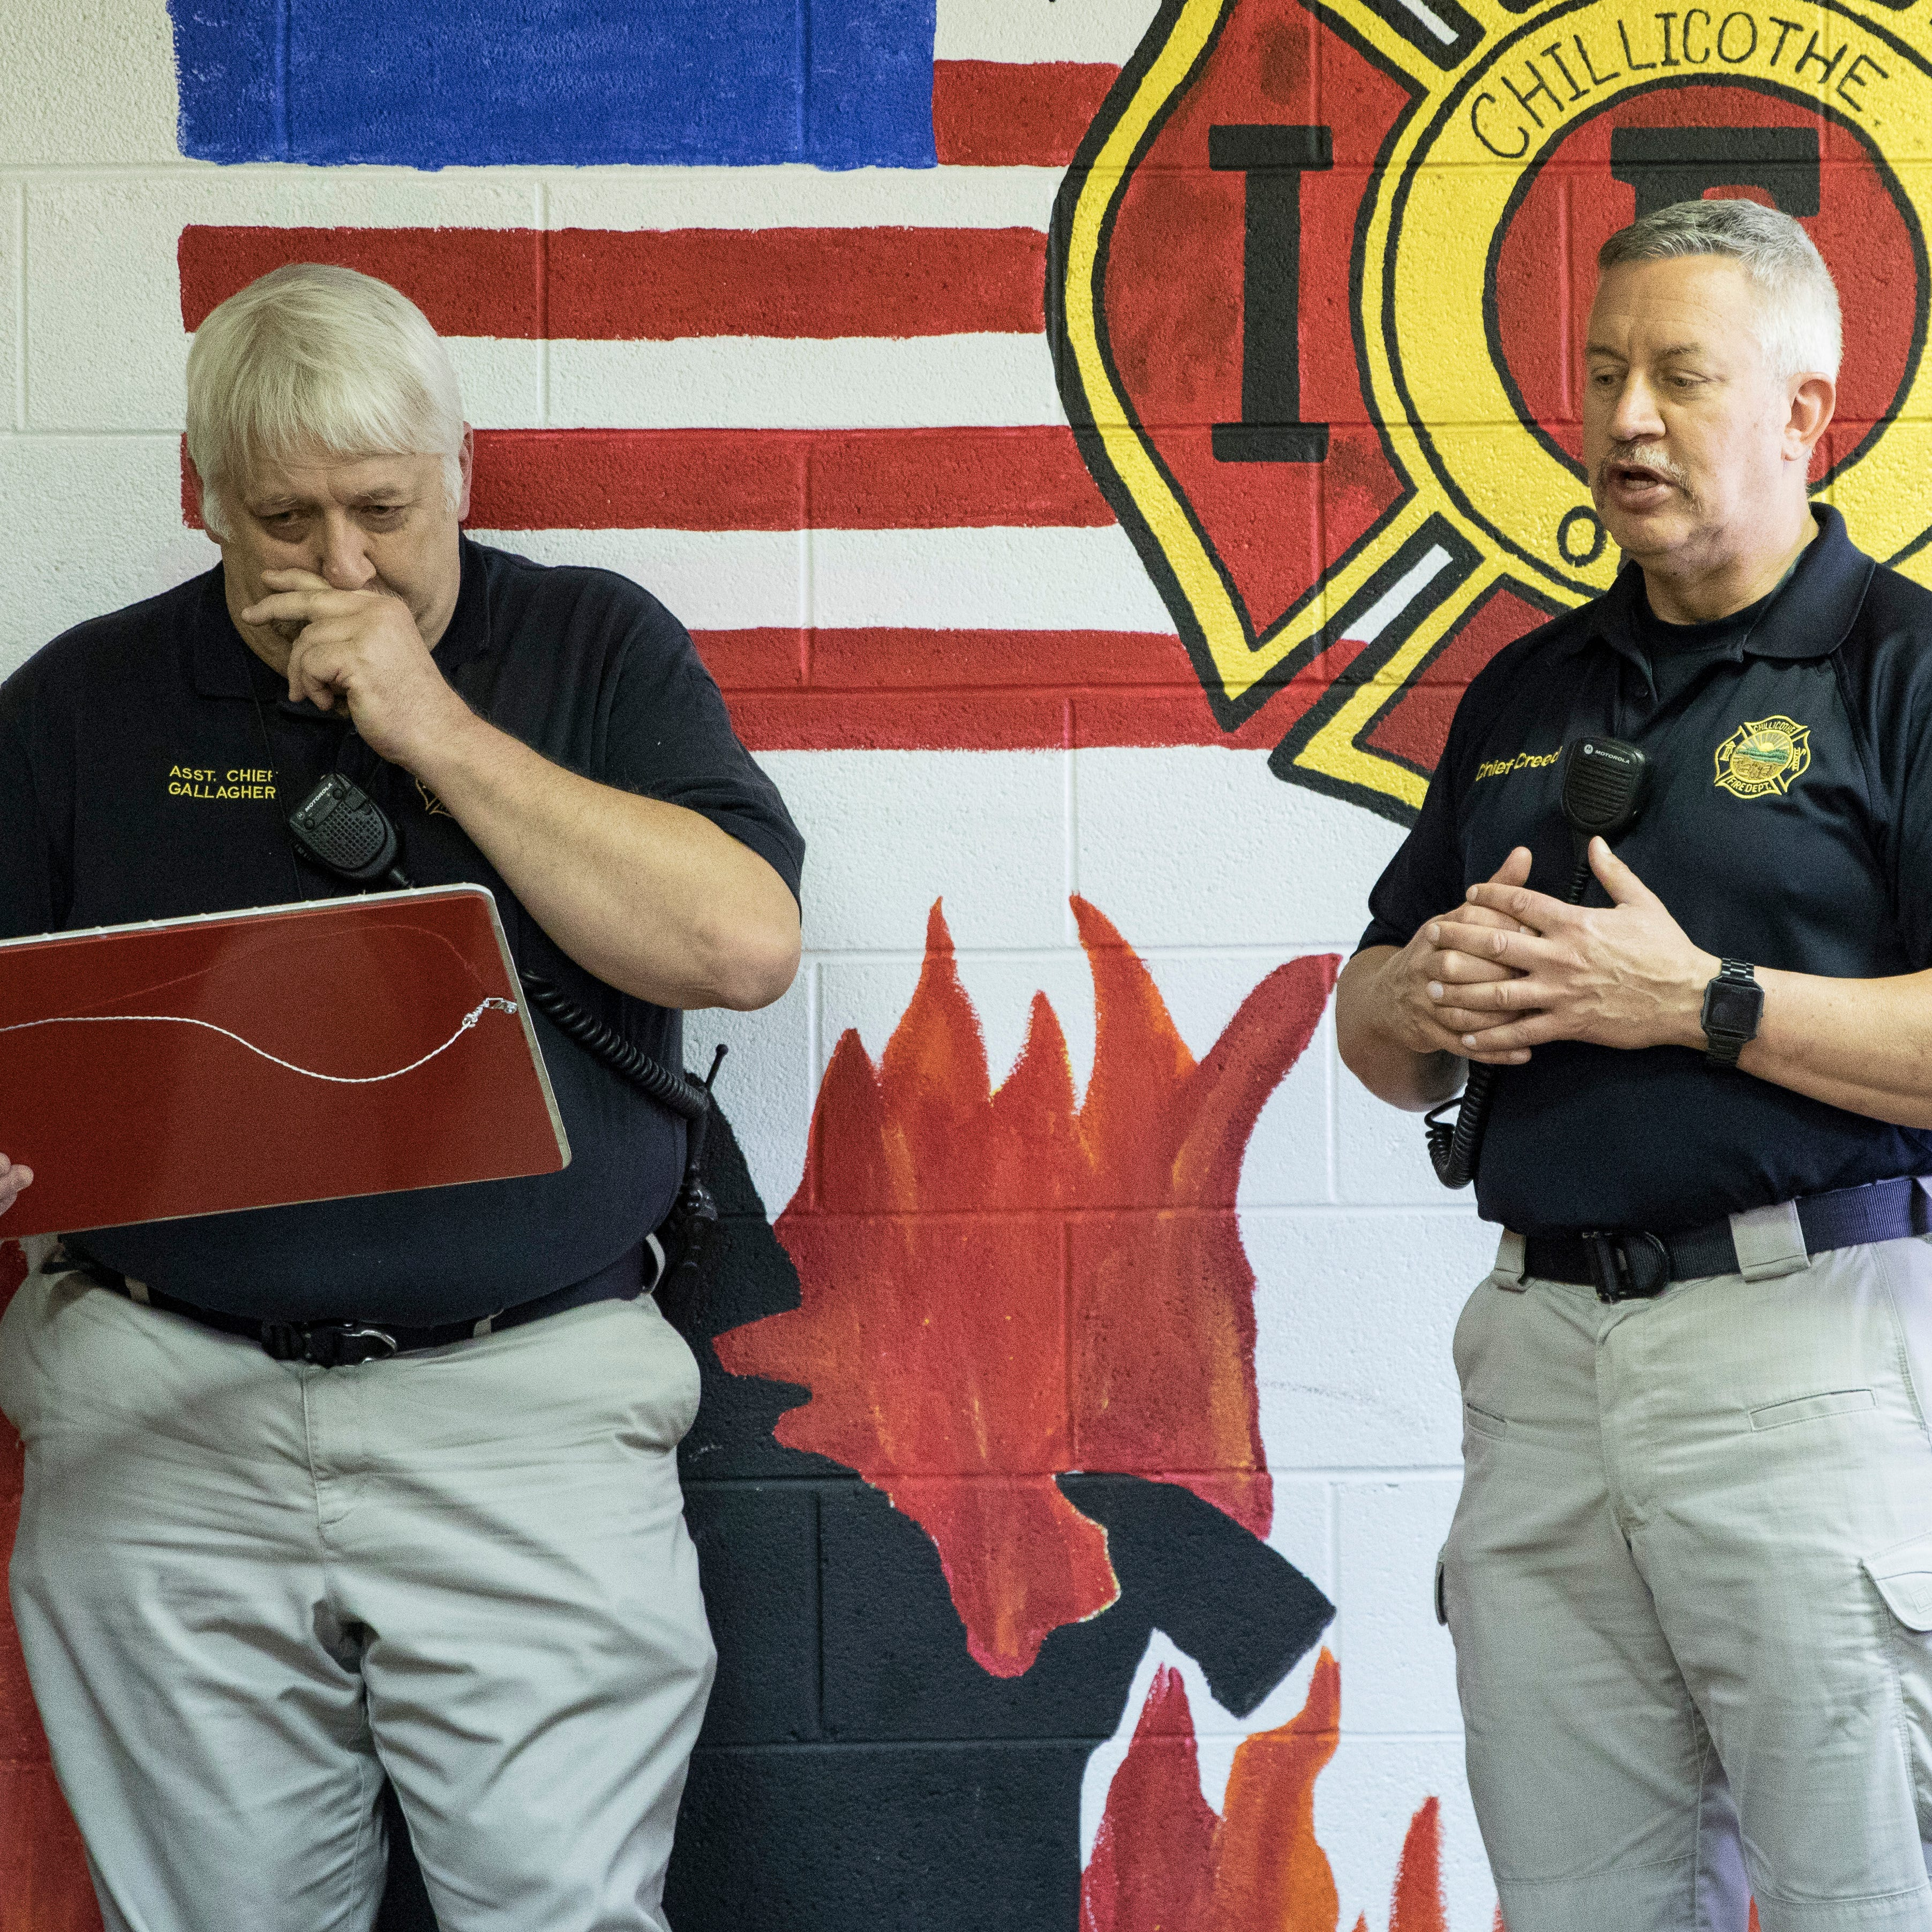 Assistant Chillicothe fire chief retires after 33-year career